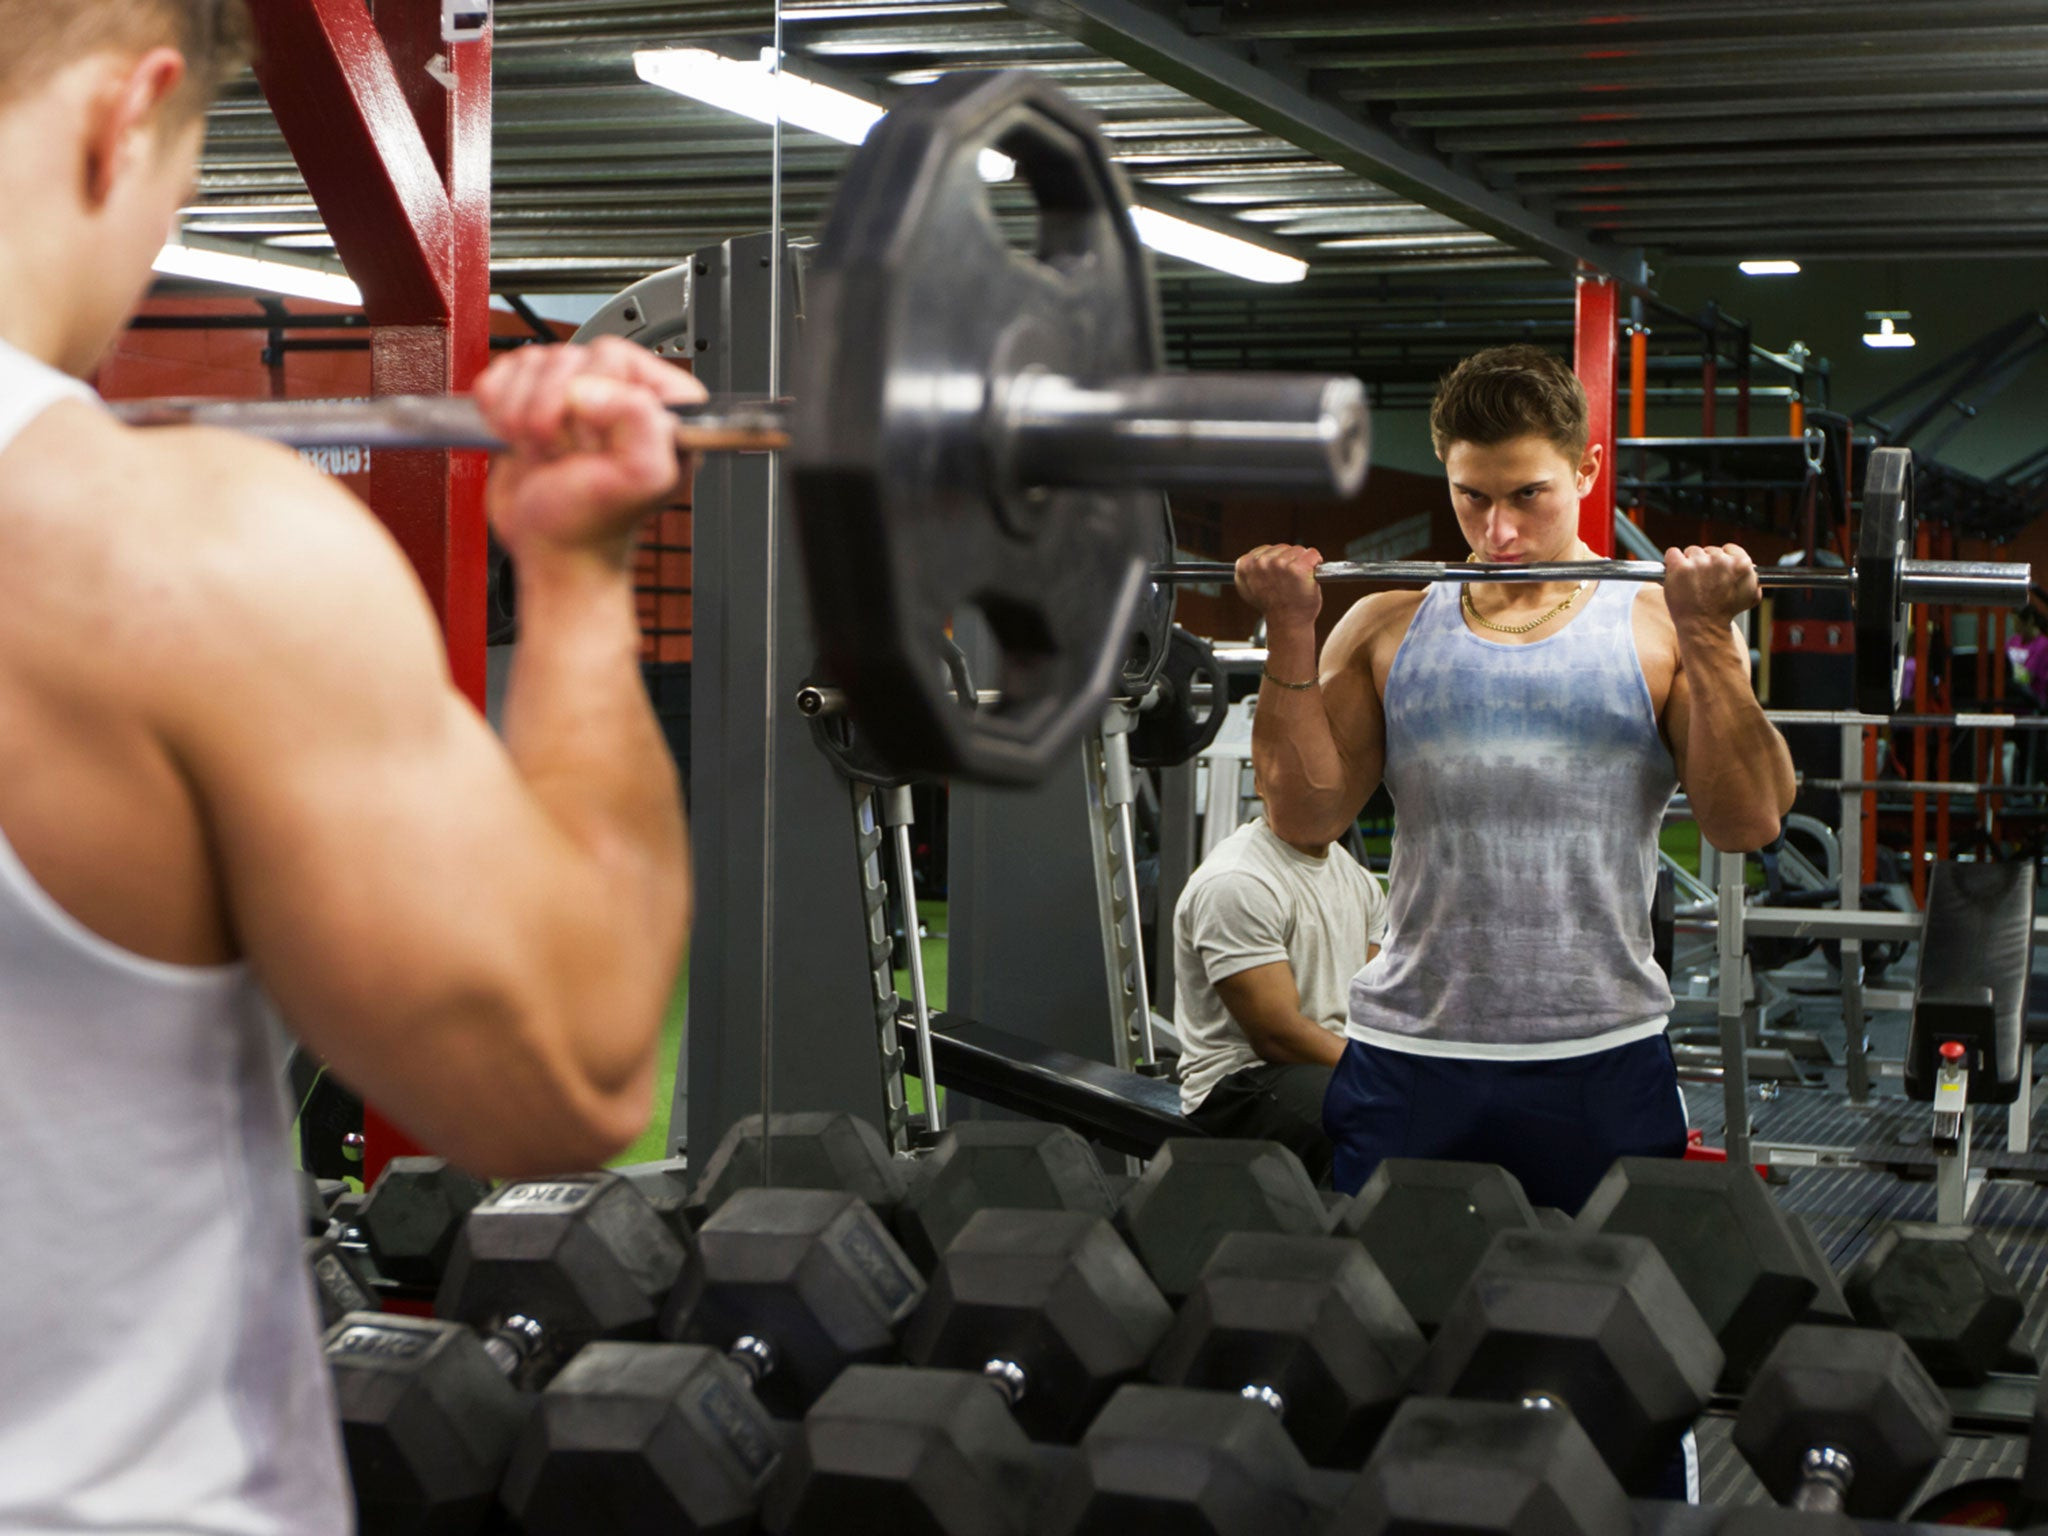 creatine a supplement used by athletes Creatine supplements are used by athletes and others to  creatine is a chemical that powers your muscles when they need a strong burst of energy, but have already burned through stores of atp .